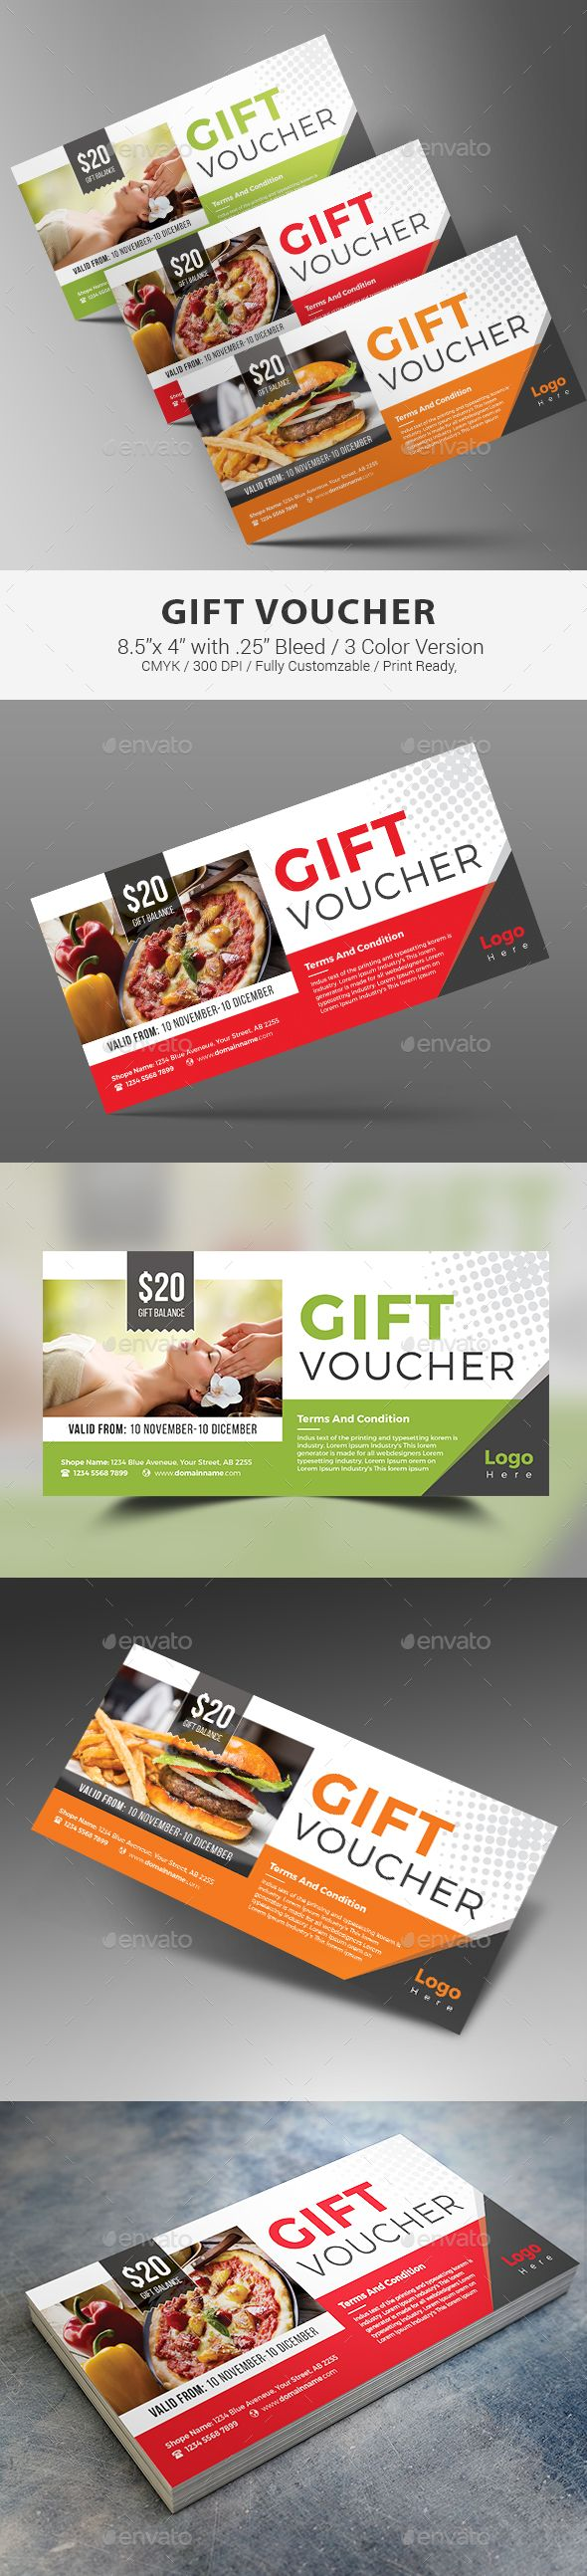 Gift Certificates Samples Enchanting 8 Best Gift Vouchers Templates Images On Pinterest  Gift Vouchers .